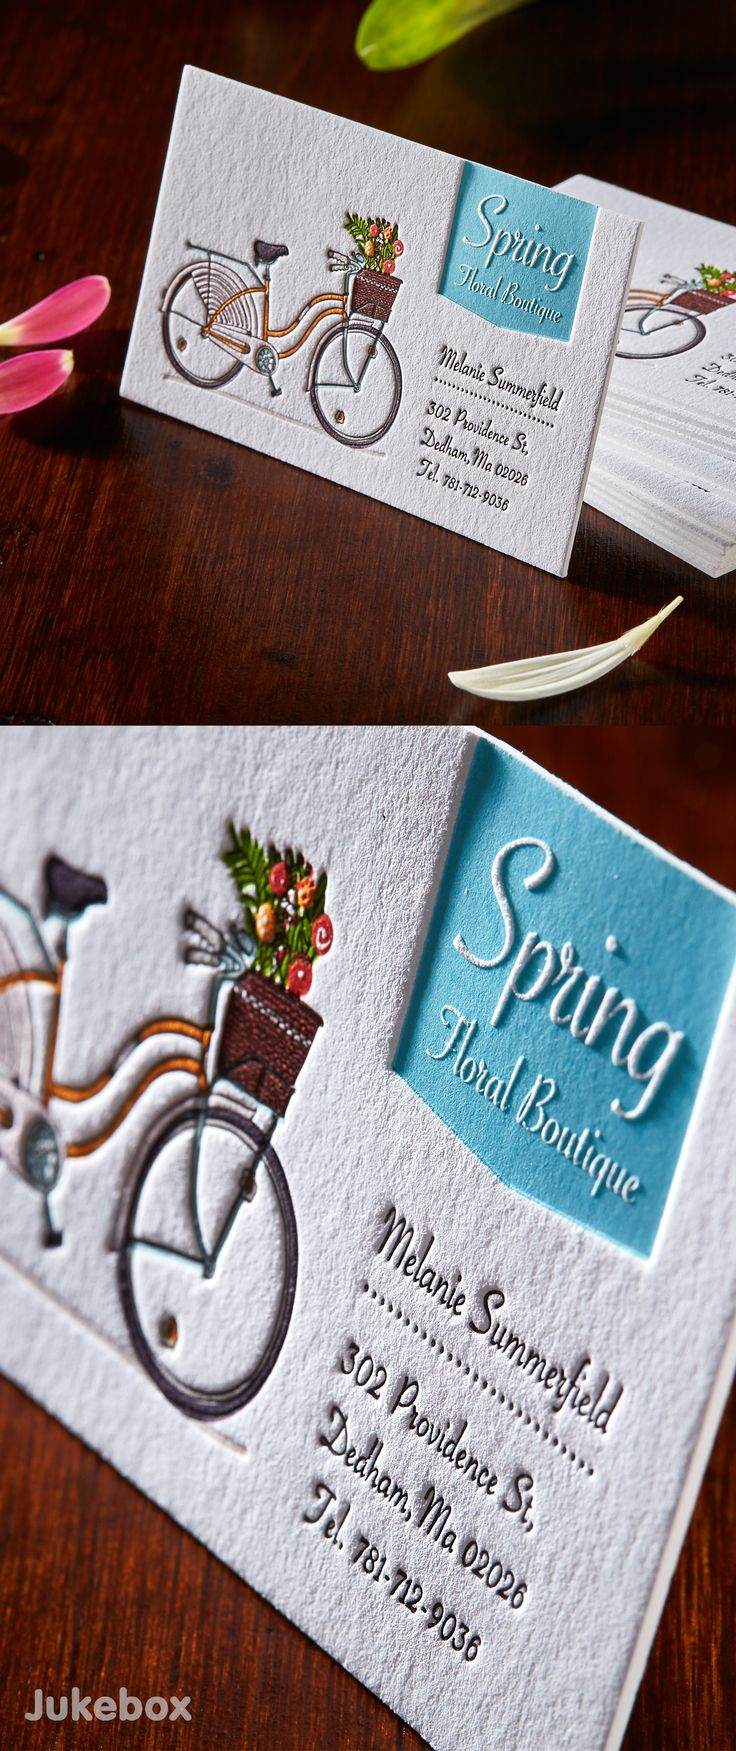 107 best inspiration images on pinterest business card design a cute letterpress business card produced on cotton paper with deep impressions produced by jukebox colourmoves